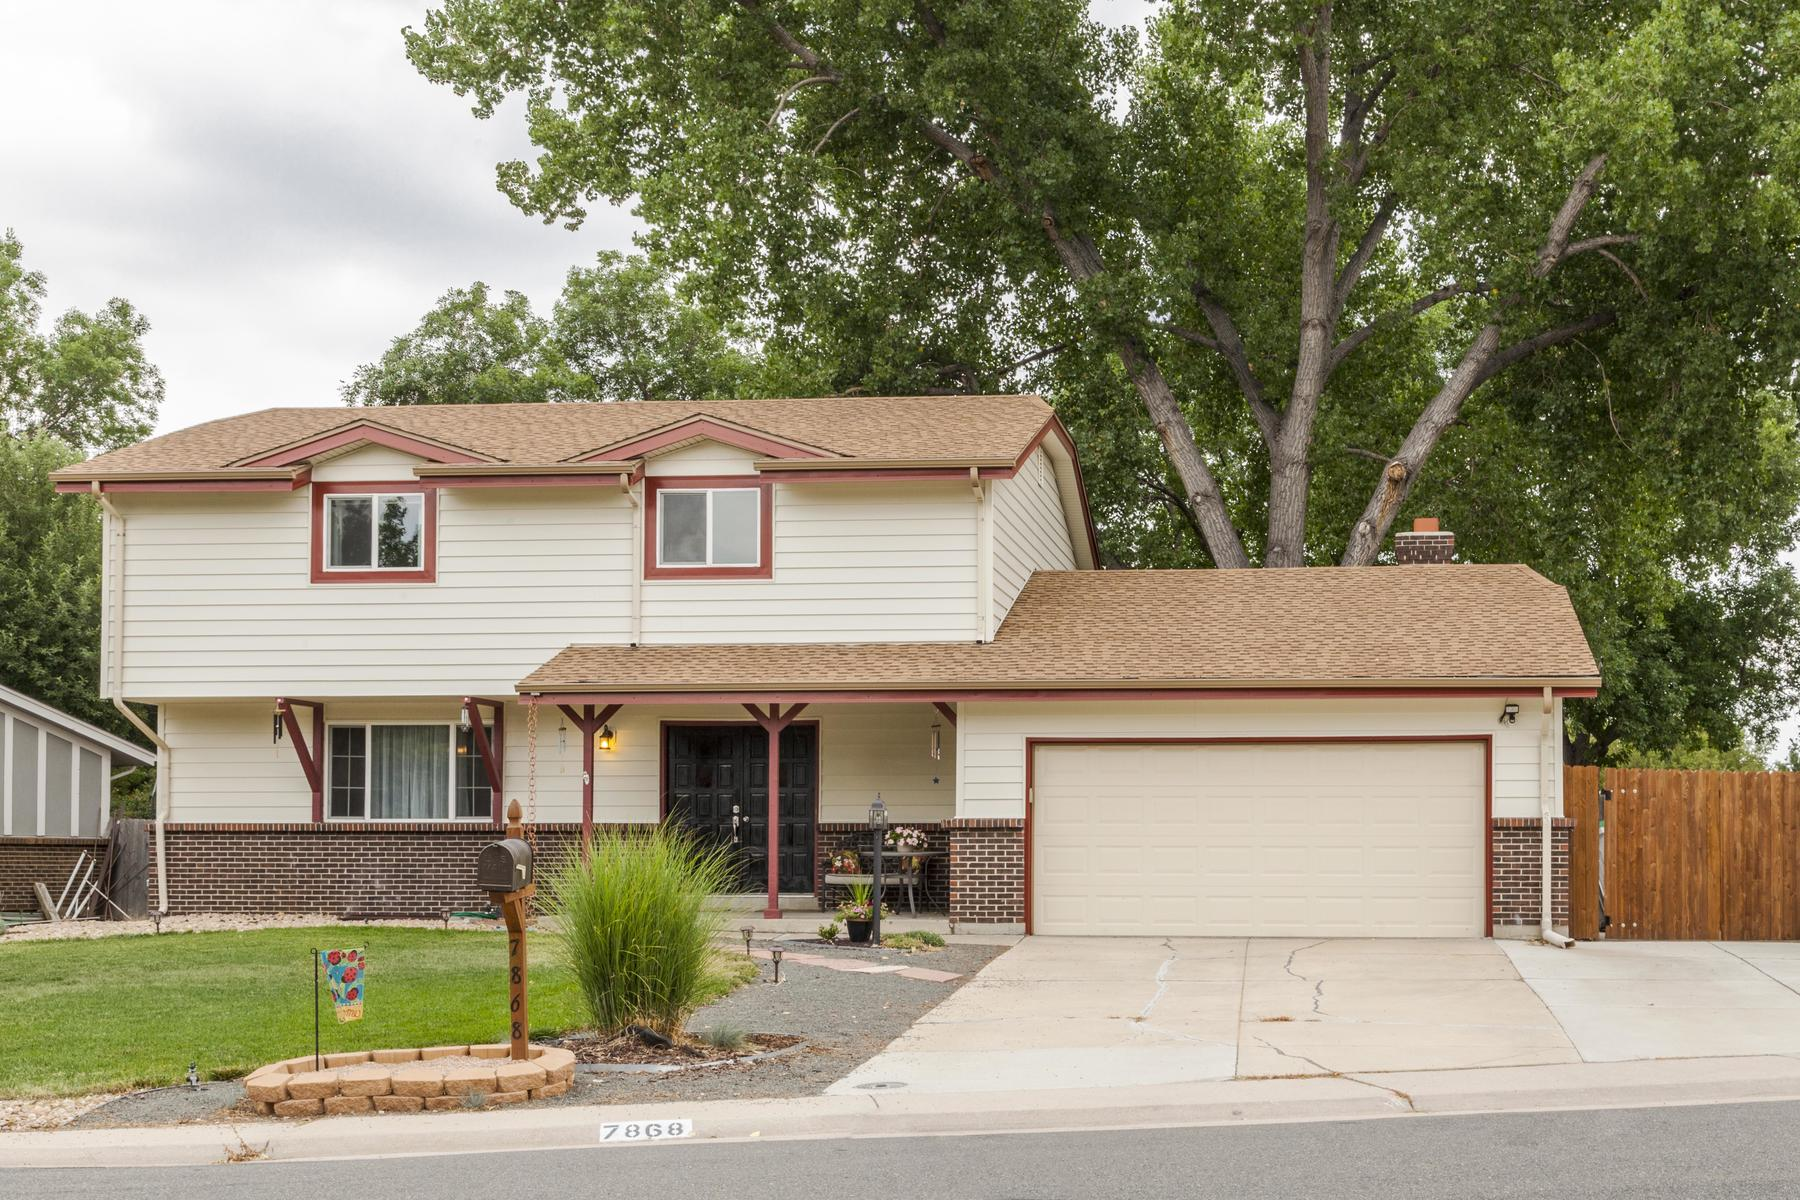 Single Family Home for Sale at 7868 West 82nd Place Arvada, Colorado, 80005 United States